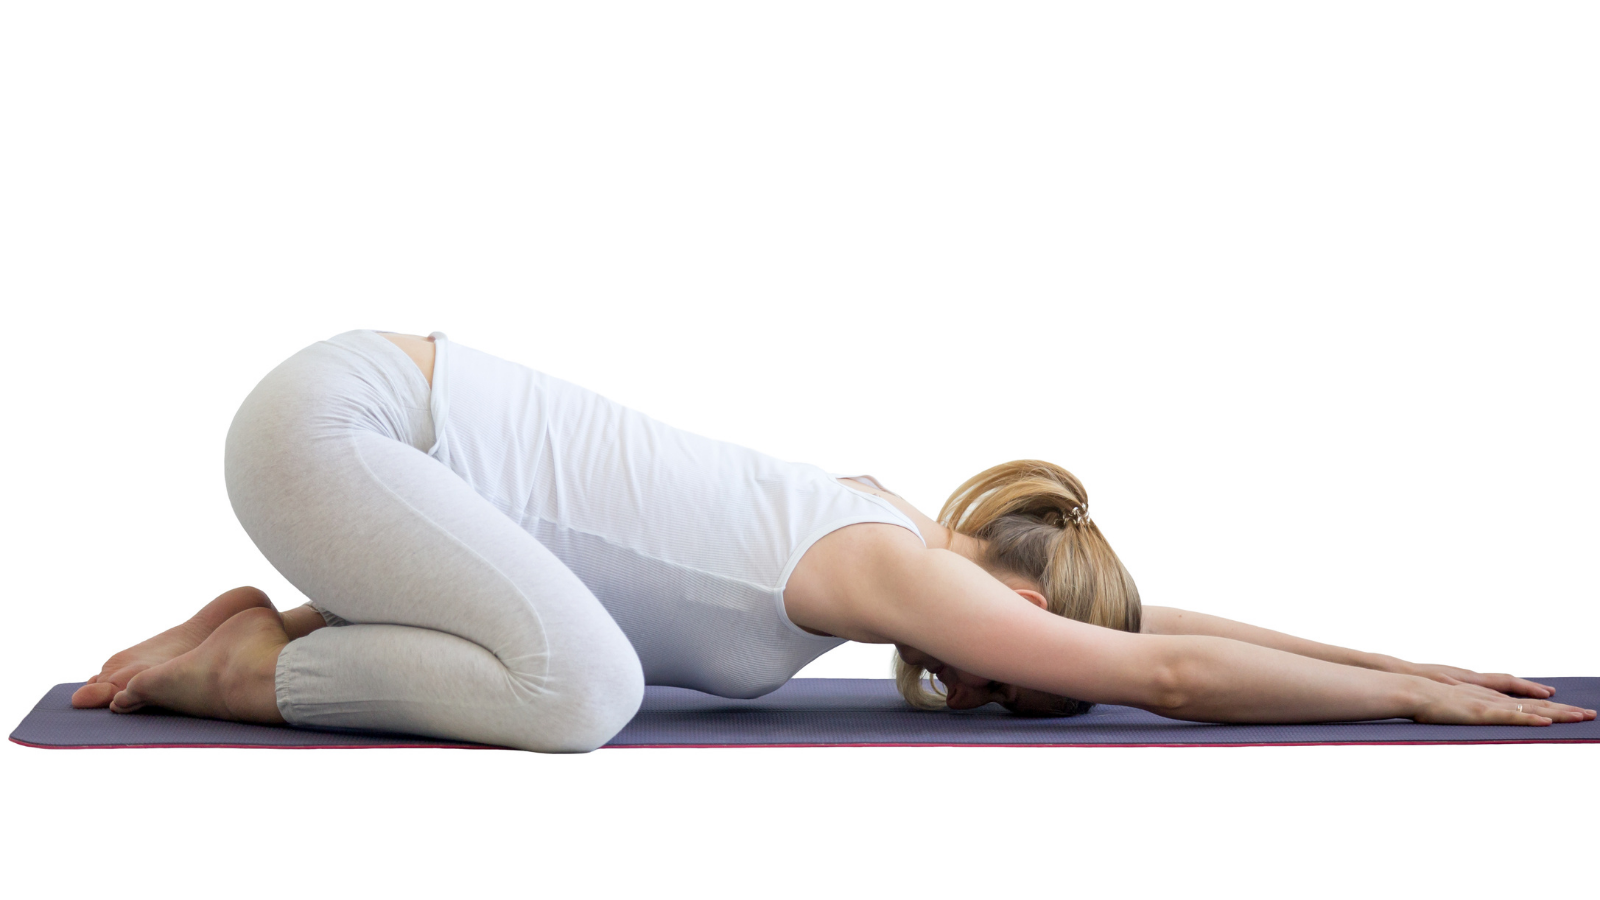 Yoga student practicing wide-knees child's pose (Balasana) with the Chakra theme of going with the flow